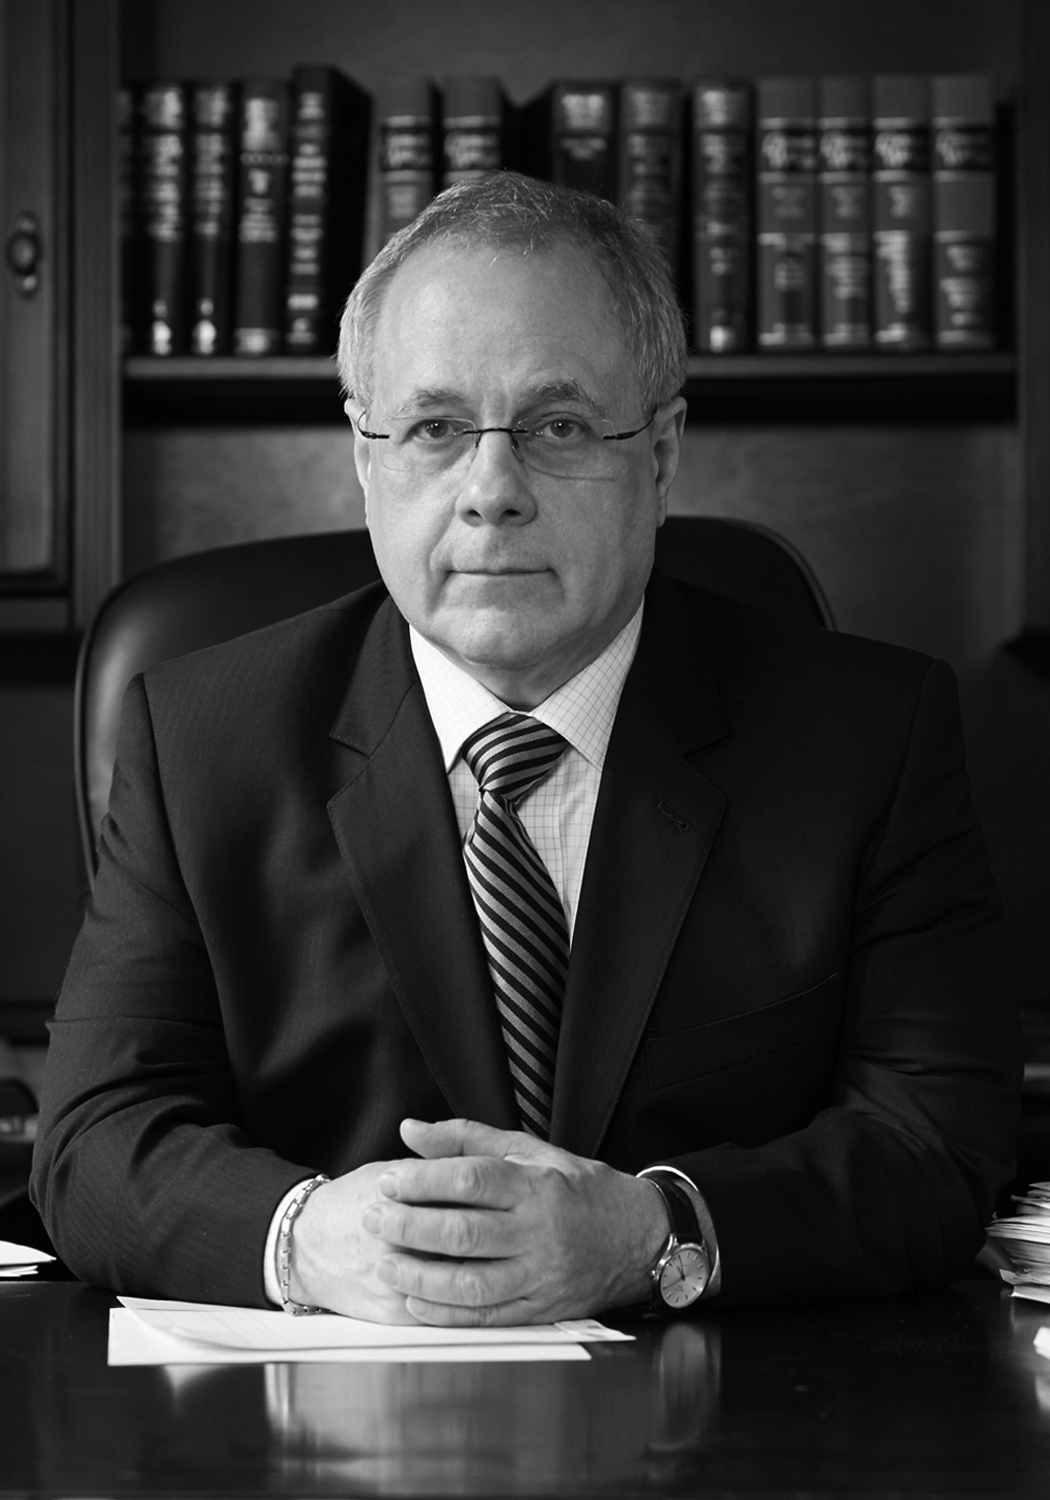 Bob Grimble - Robert Grimble has been practicing law in New York City since 1976.He earned his Bachelor of Science from Massachusetts Institute of Technology (MIT) in 1972, and went on to earn his law degree from Northeastern University in 1975. After serving as clerk to the Honorable Eugene Nardelli, Bob went into private practice in 1981.Bob was a partner at Jennings & Grimble, P.C., for over seven years before starting his own firm, Robert Grimble, P.C. In 2002, Bob teamed up with Robin LoGuidice, to form Grimble & LoGuidice, LLC.Bob believes in giving back to the community. He has worked for many years as a volunteer at Eviction Intervention Services and Project Basement and in 2003, was awarded the prestigious Jane Brown Service award.Bob enjoys playing low brass and saxophone, and he is also an accomplished painter. In his free time he enjoys photography, working with computers, reading science fiction, practicing Pilates, and scuba diving.